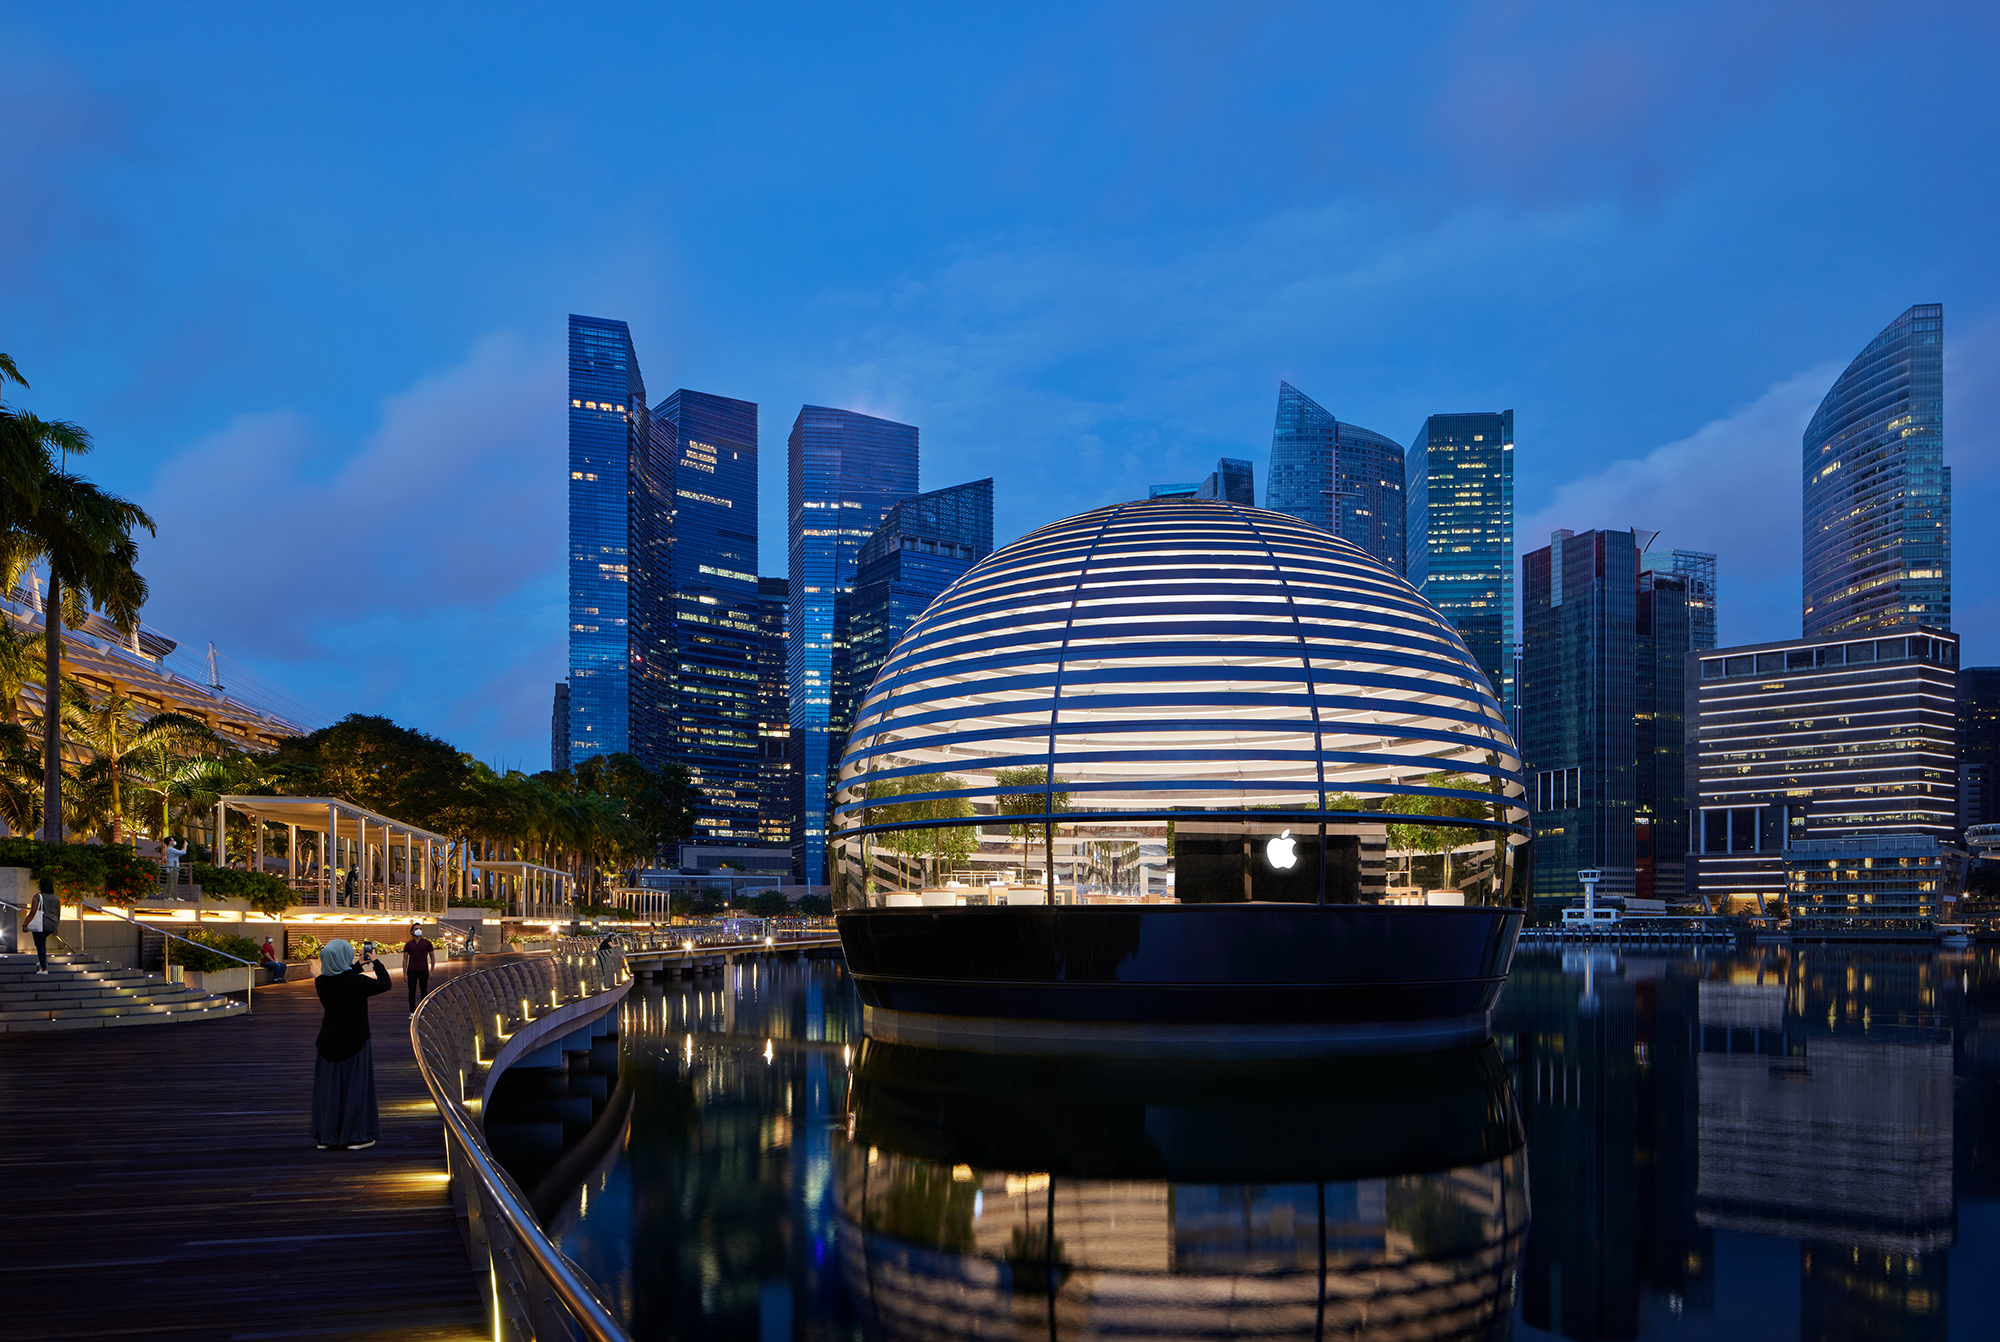 a floating spherical building in singapore pictured at night